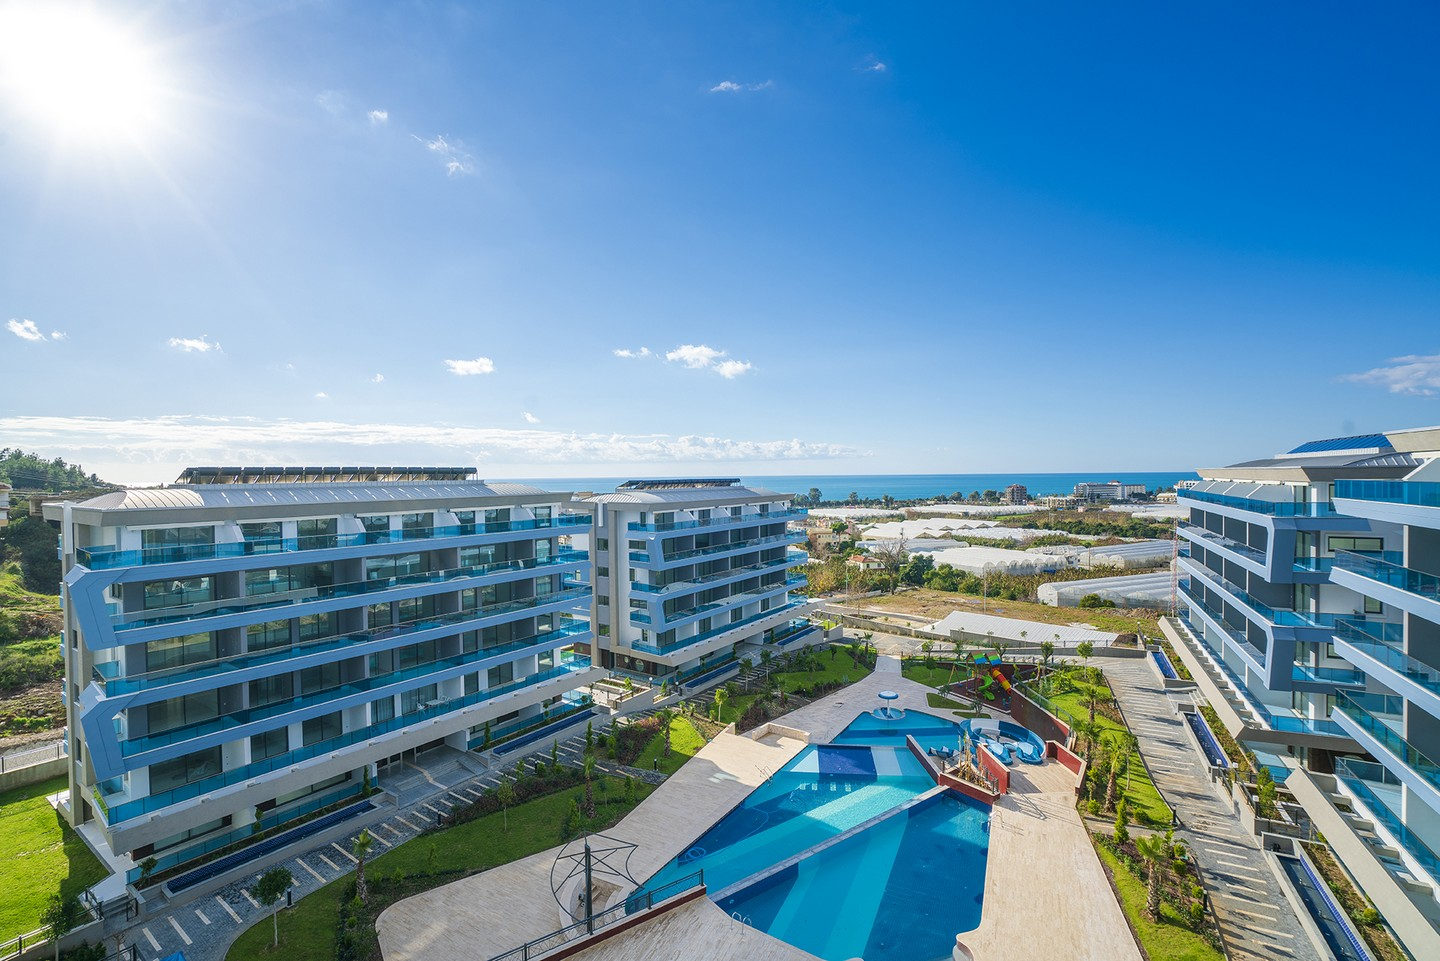 SUPER LUXURY APARTMENTS ON A BEAUTIFUL LOCATION IN ALANYA